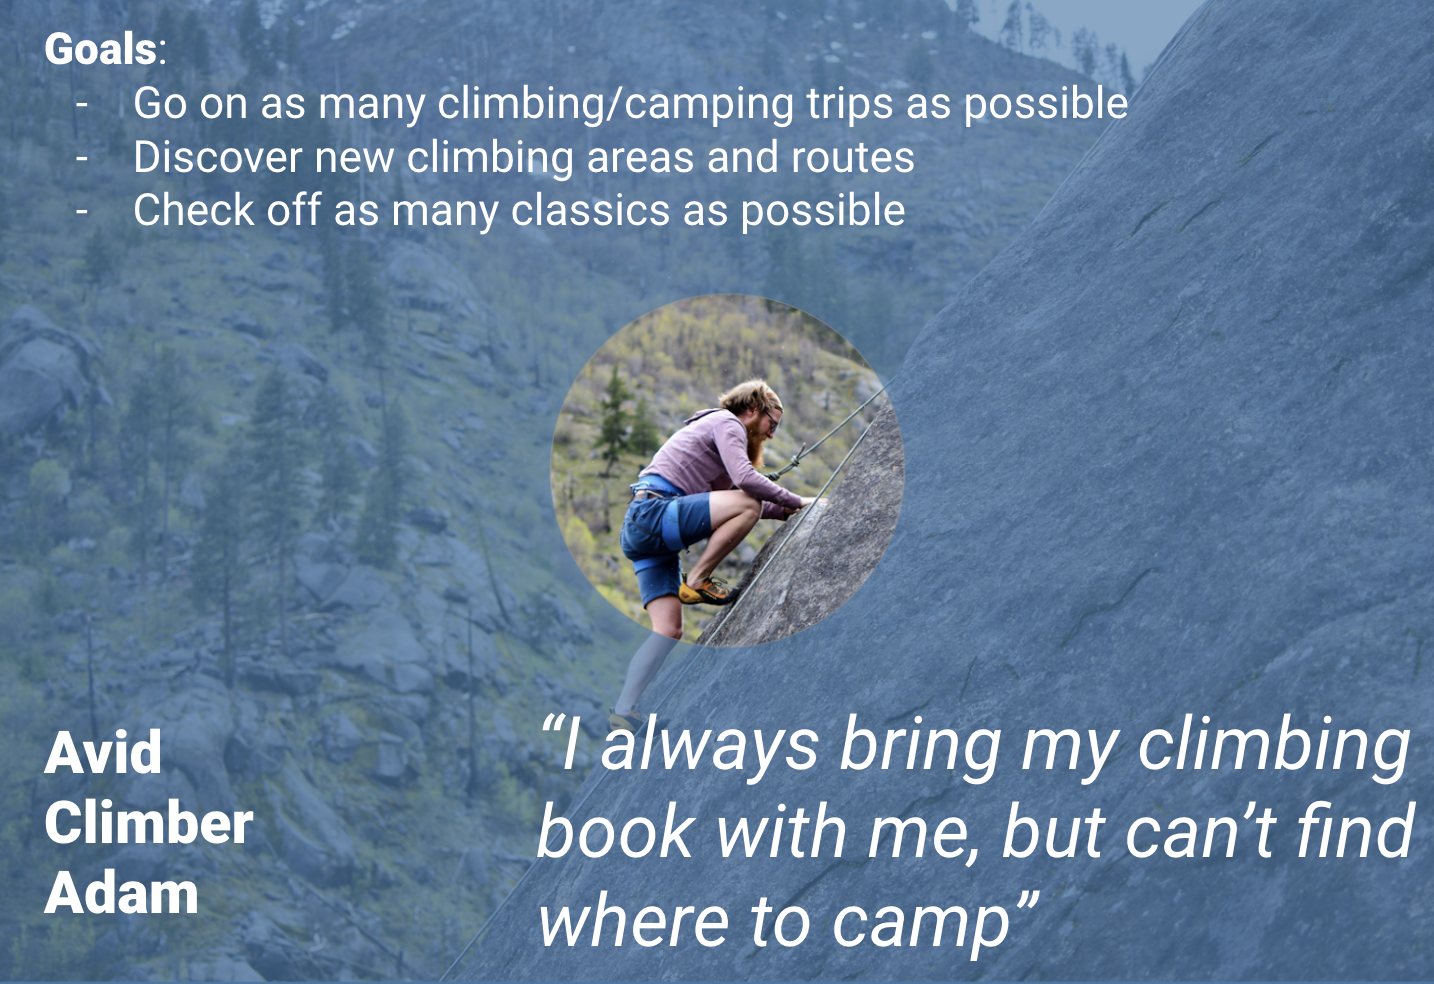 Avid Climber Adam  is an experienced climber, looking to explore new routes around Colorado, and track what routes he's completed.